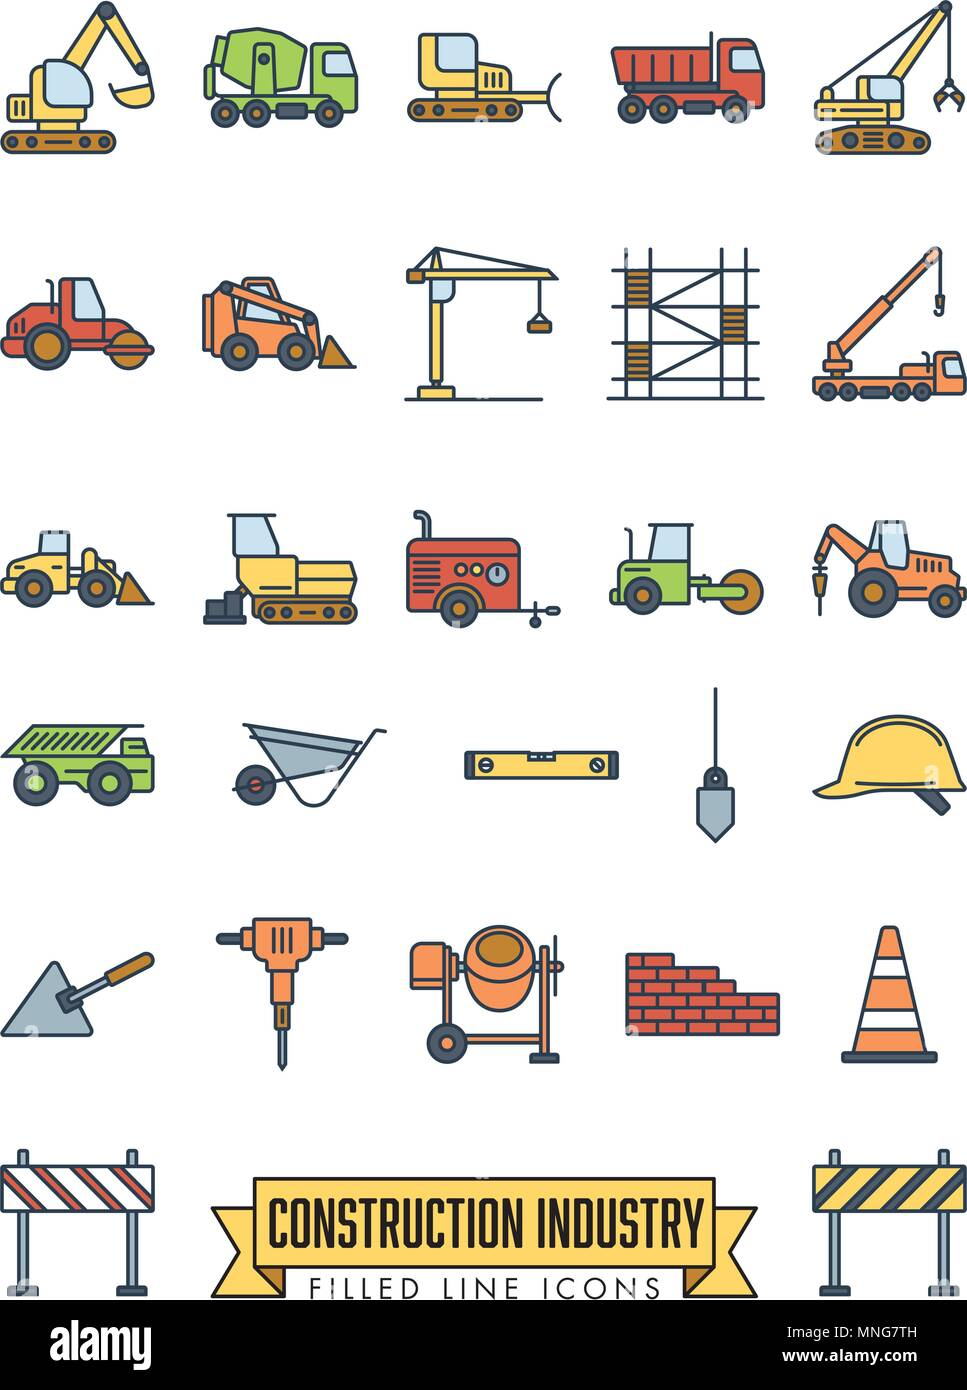 Industrial construction machinery and tools filled line icon collection - Stock Vector